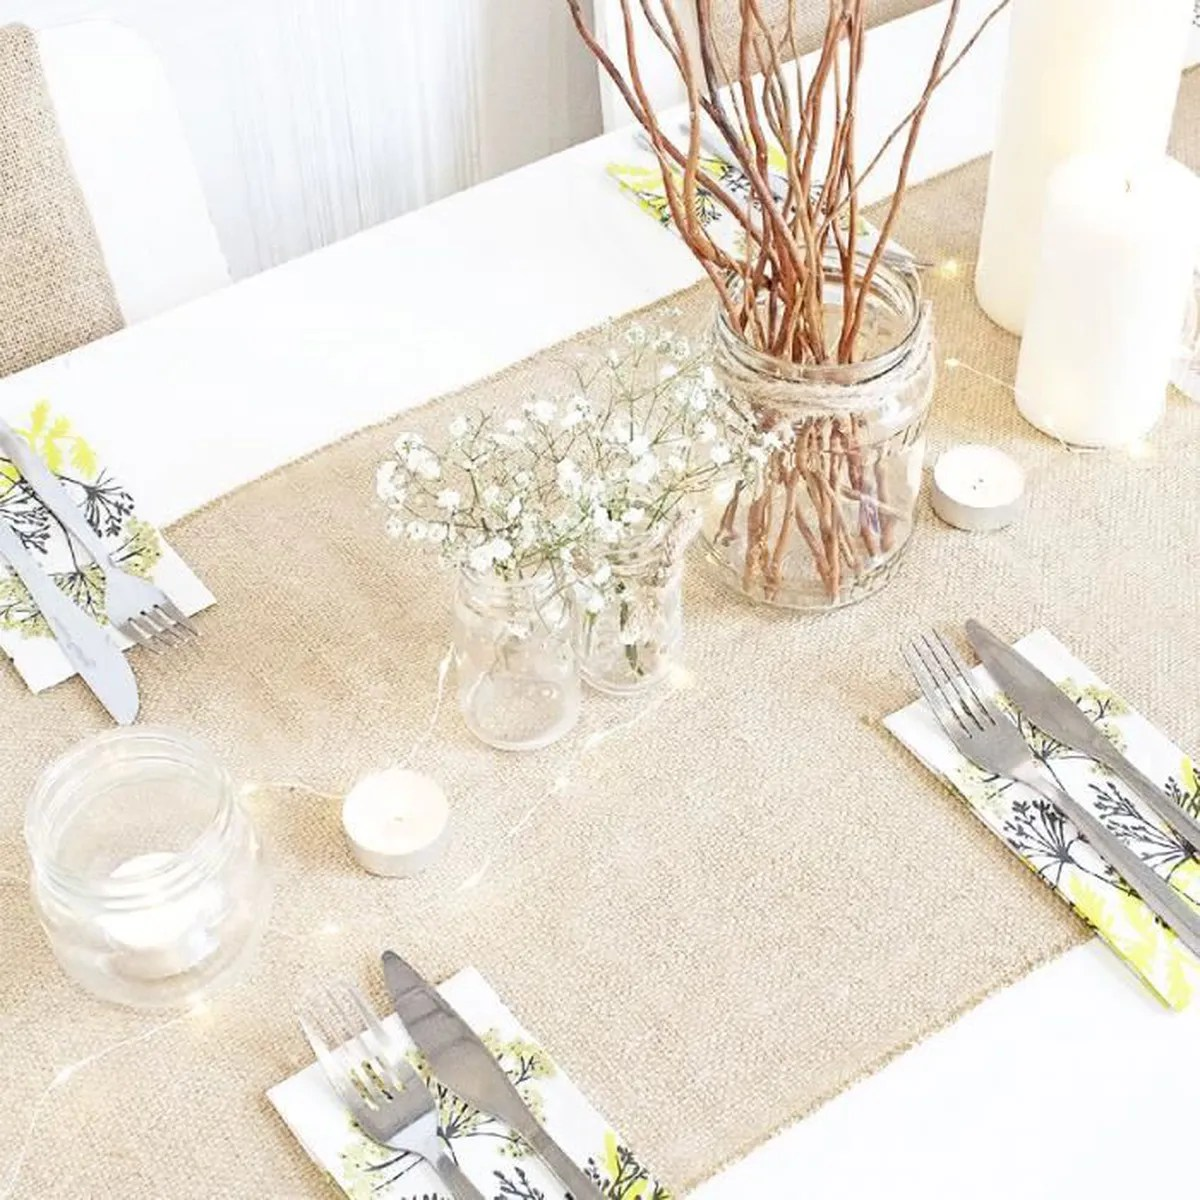 Salon Jute Sets Et Chemin De Table Achat Vente Sets Et Chemin De